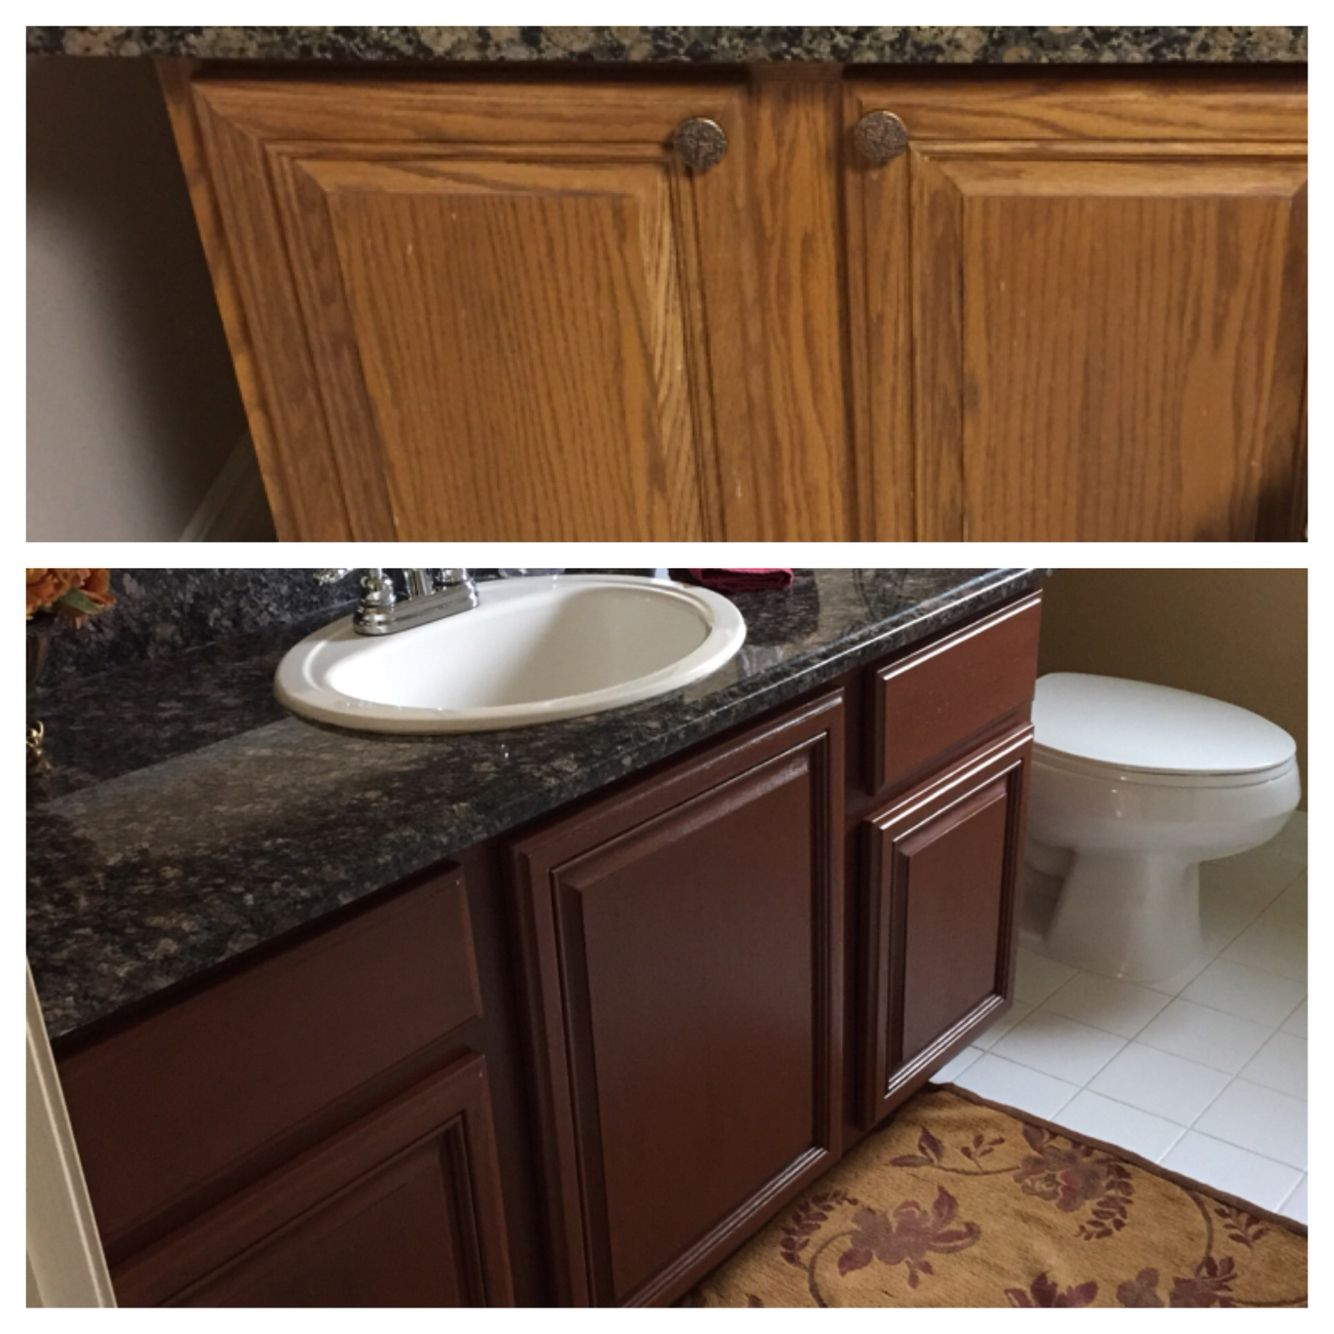 Kitchen Transformation Before And After: Top Pic Before Color. Bottom Pic After Using Rustoleum